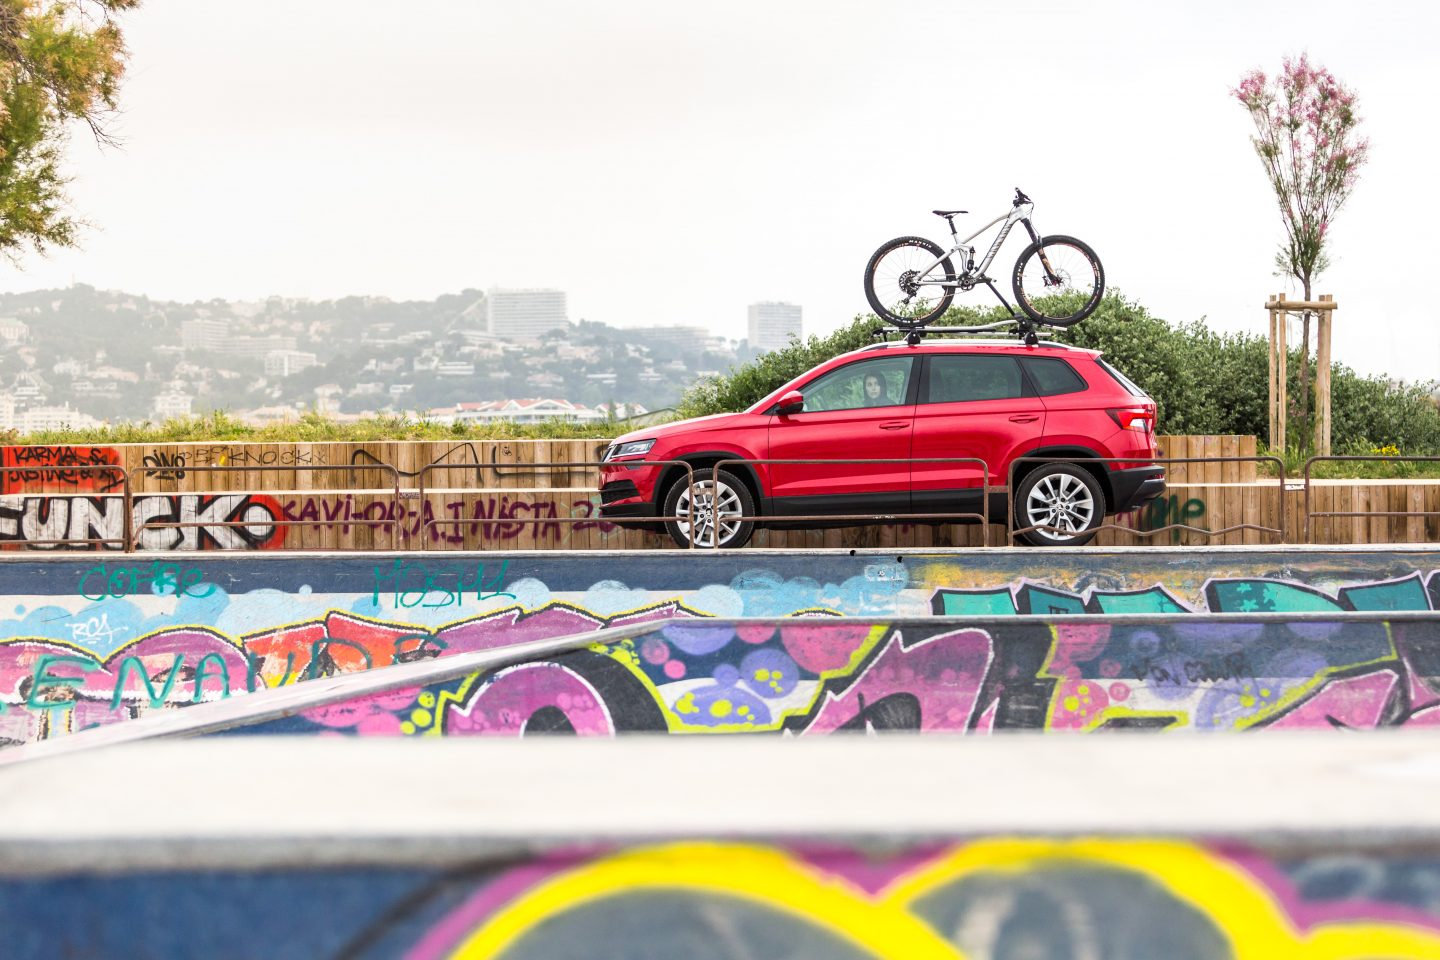 Miss Peaches on the road: Dirt jumping in Marseilles